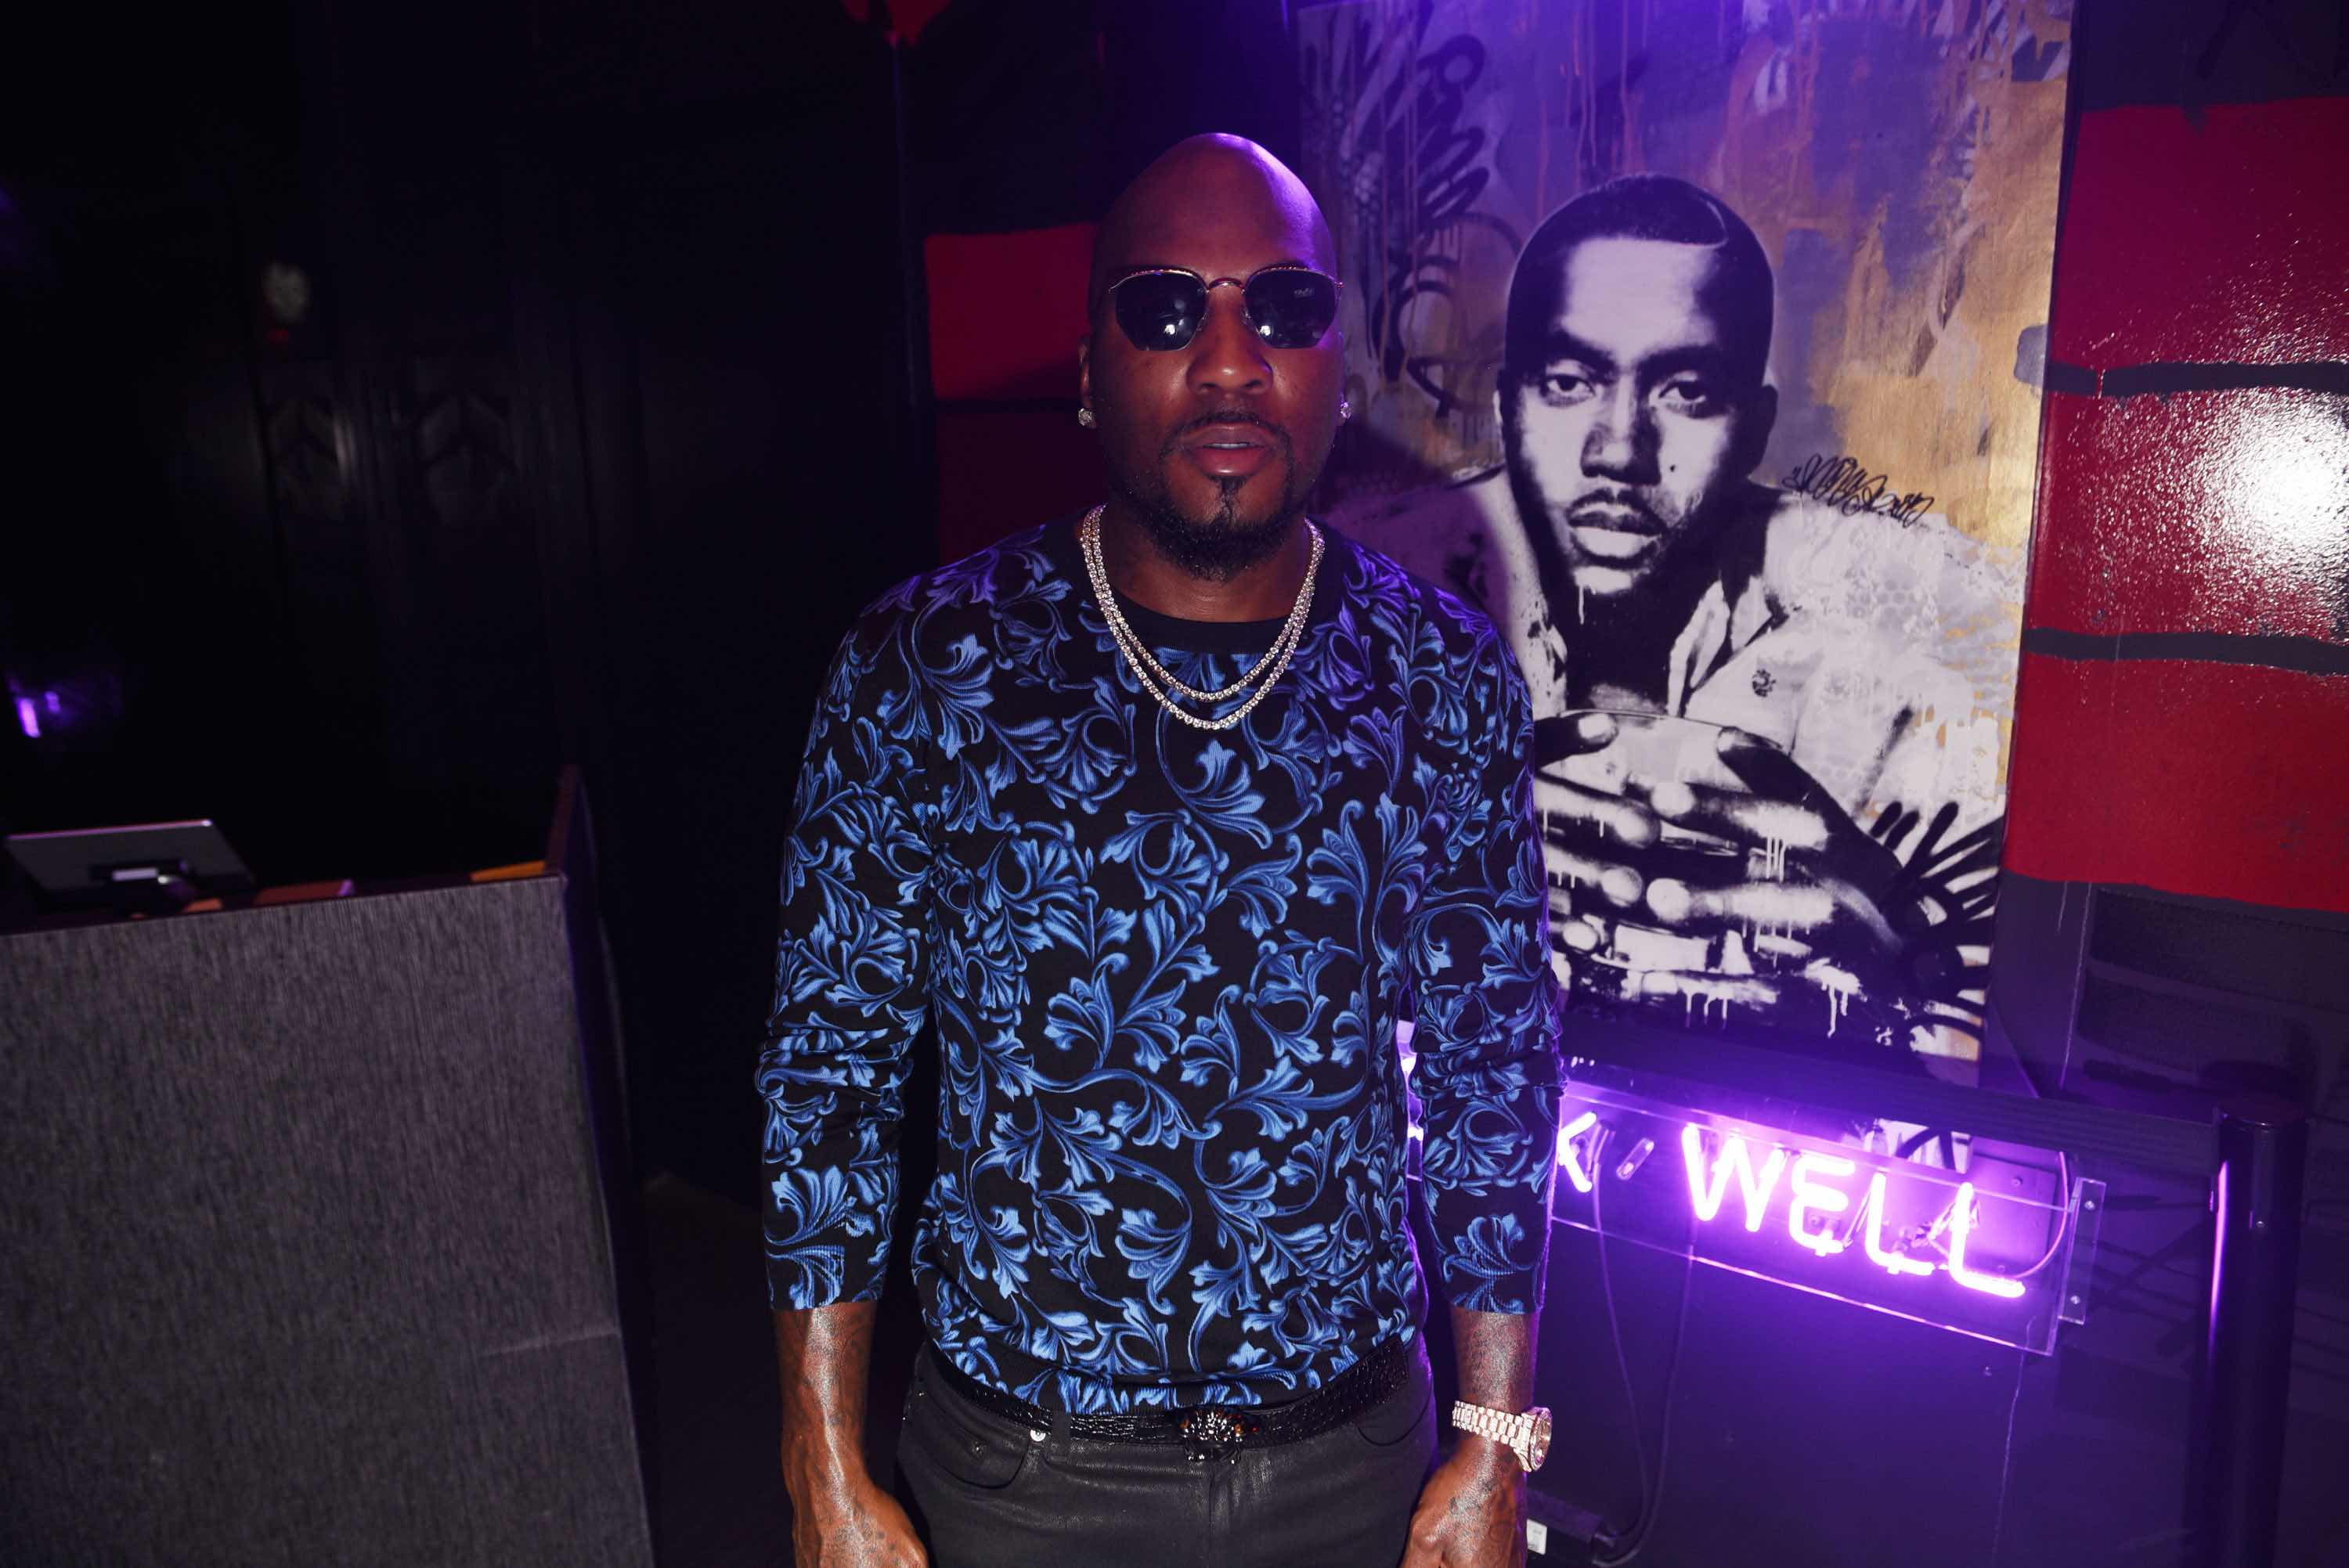 Jeezy Performing at Rockwell Nightclub on Saturday, September 2nd, 2017.